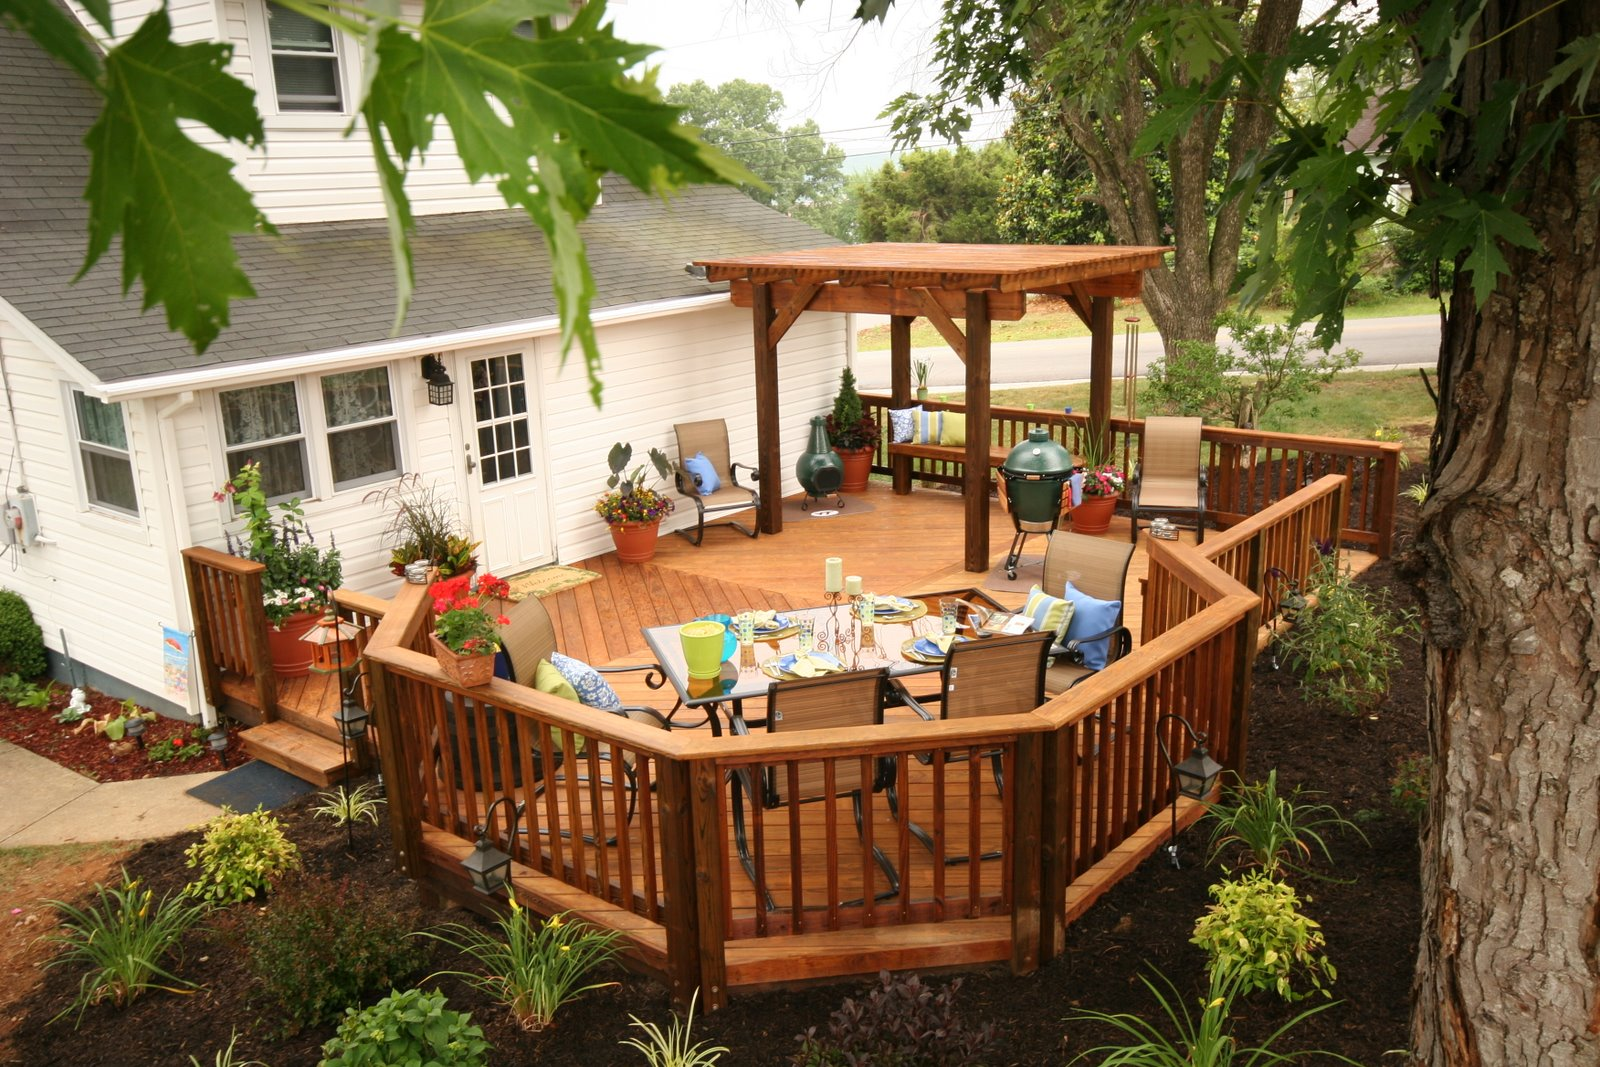 Building a Deck: Return on Investment Calculator | Wood ... on Wood Deck Ideas For Backyard id=31177